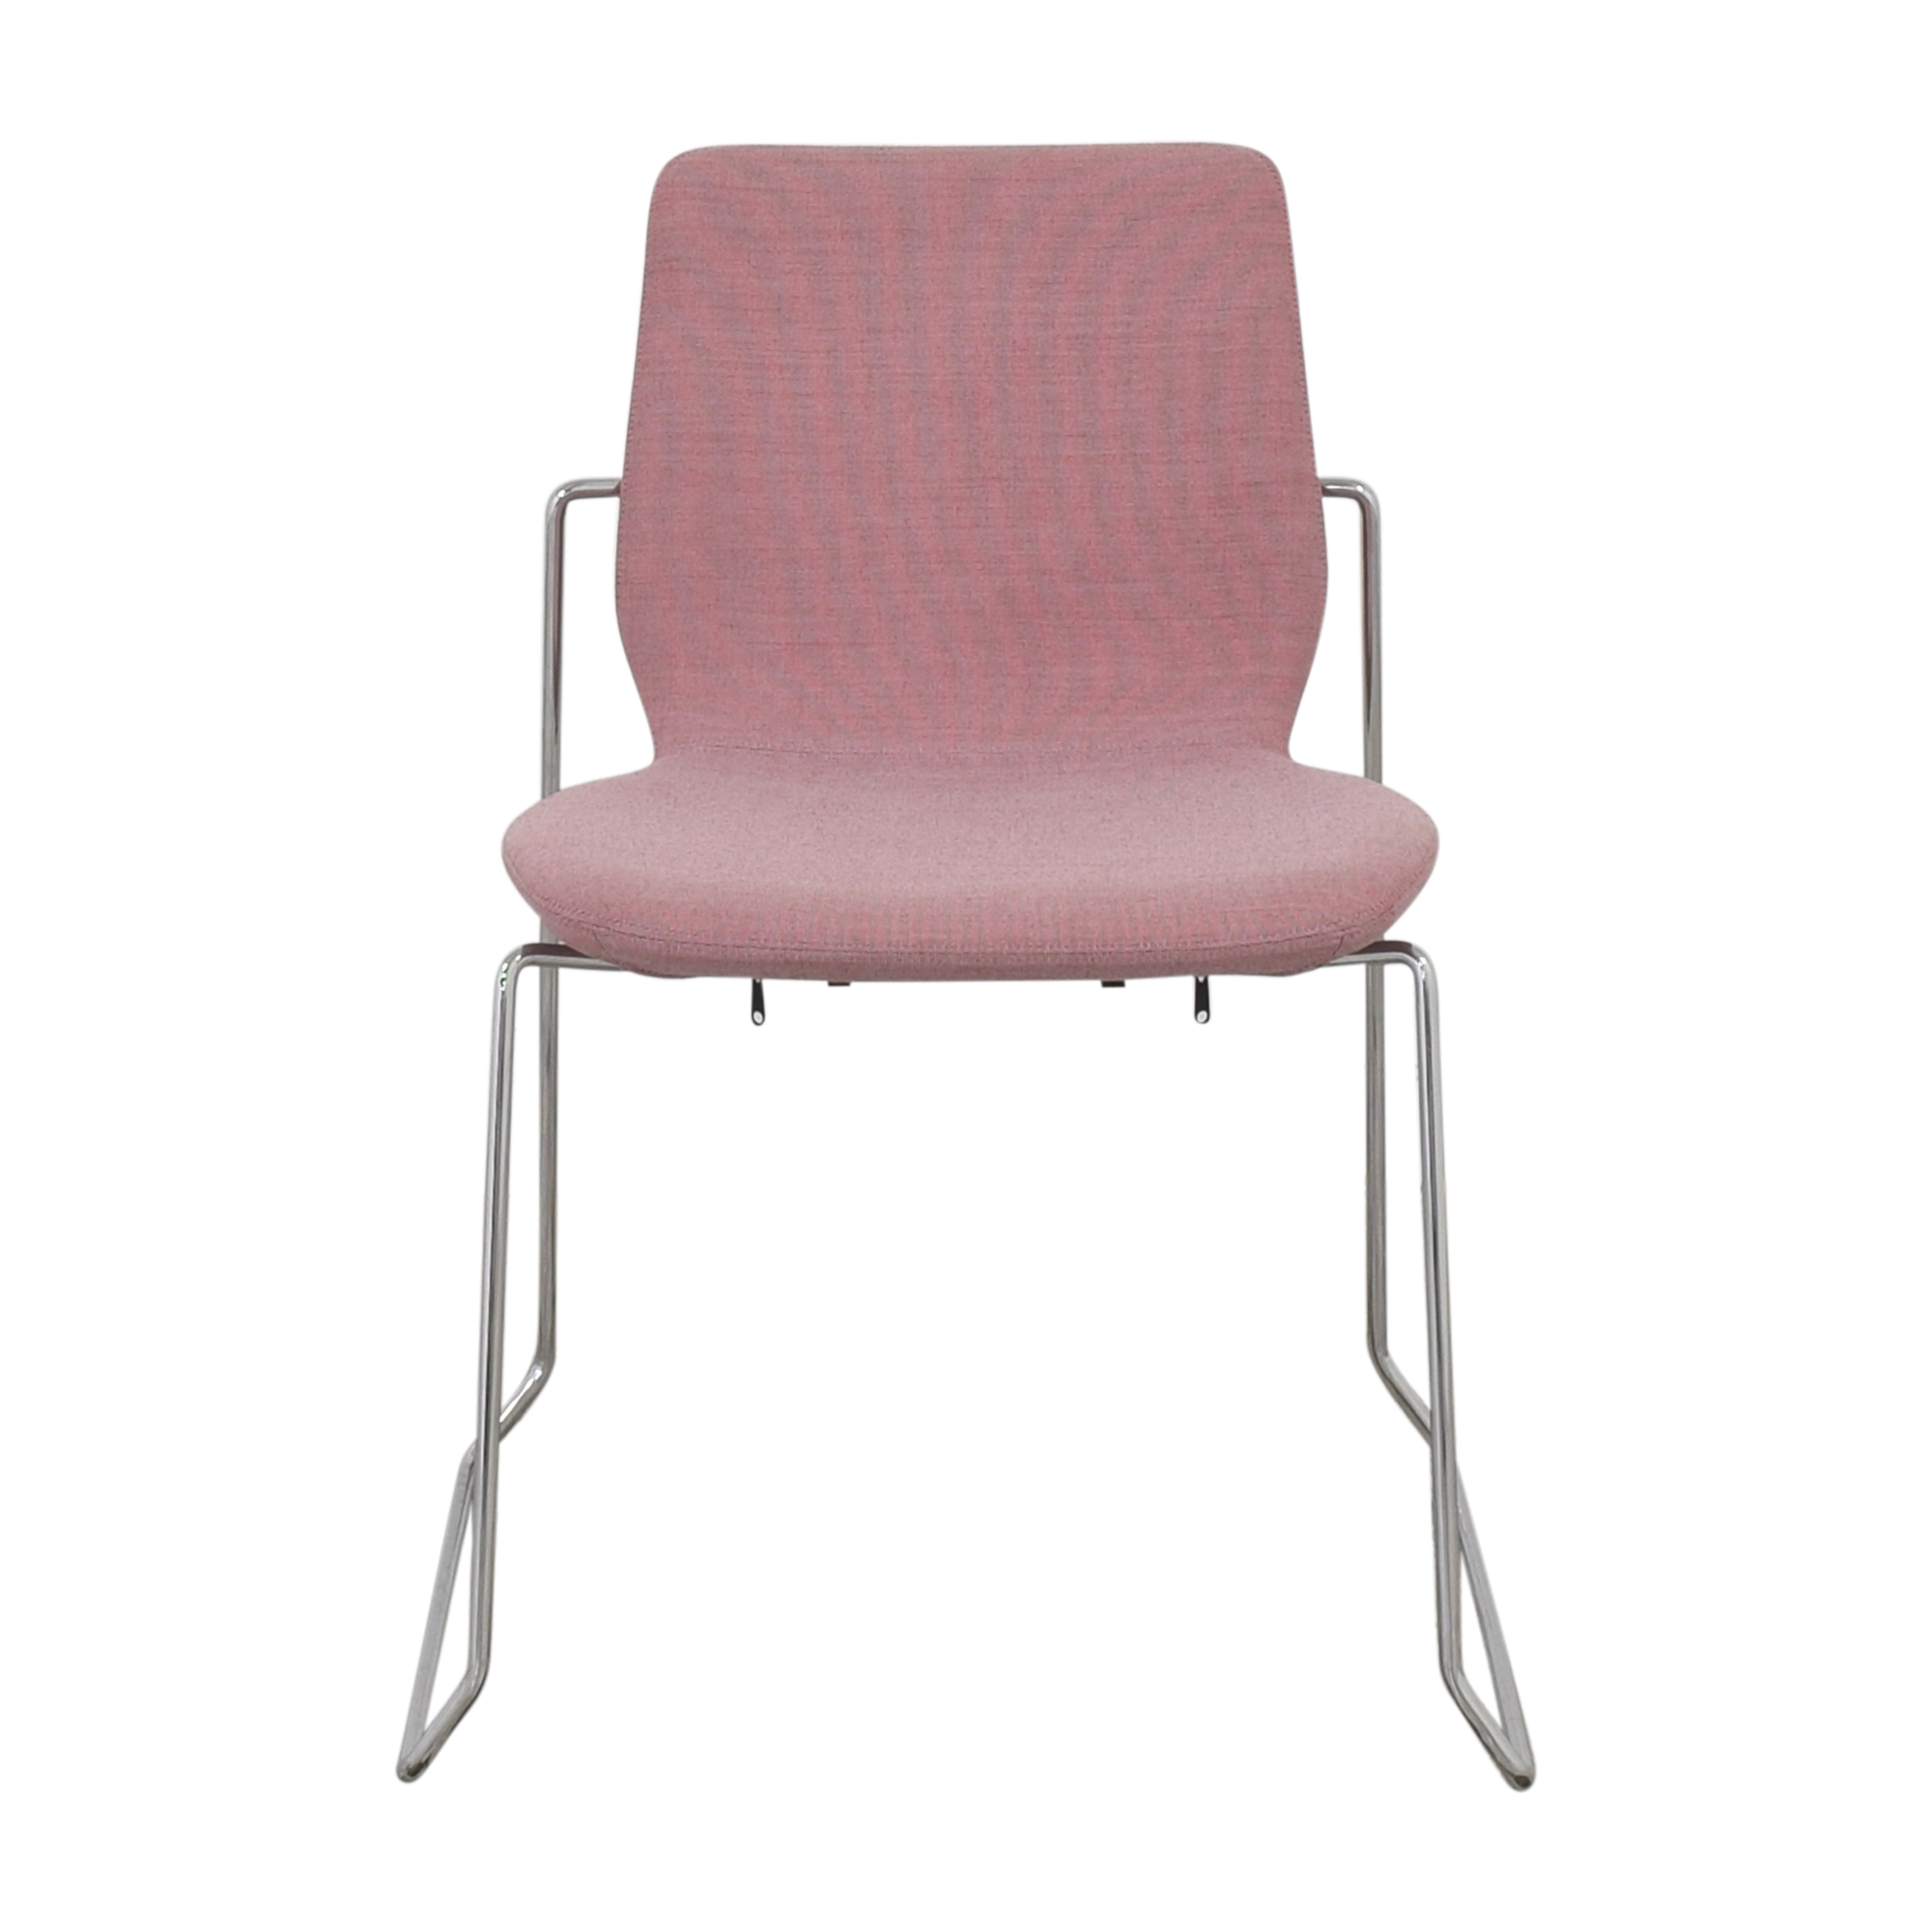 Koleksiyon Asanda Armless Chair / Accent Chairs